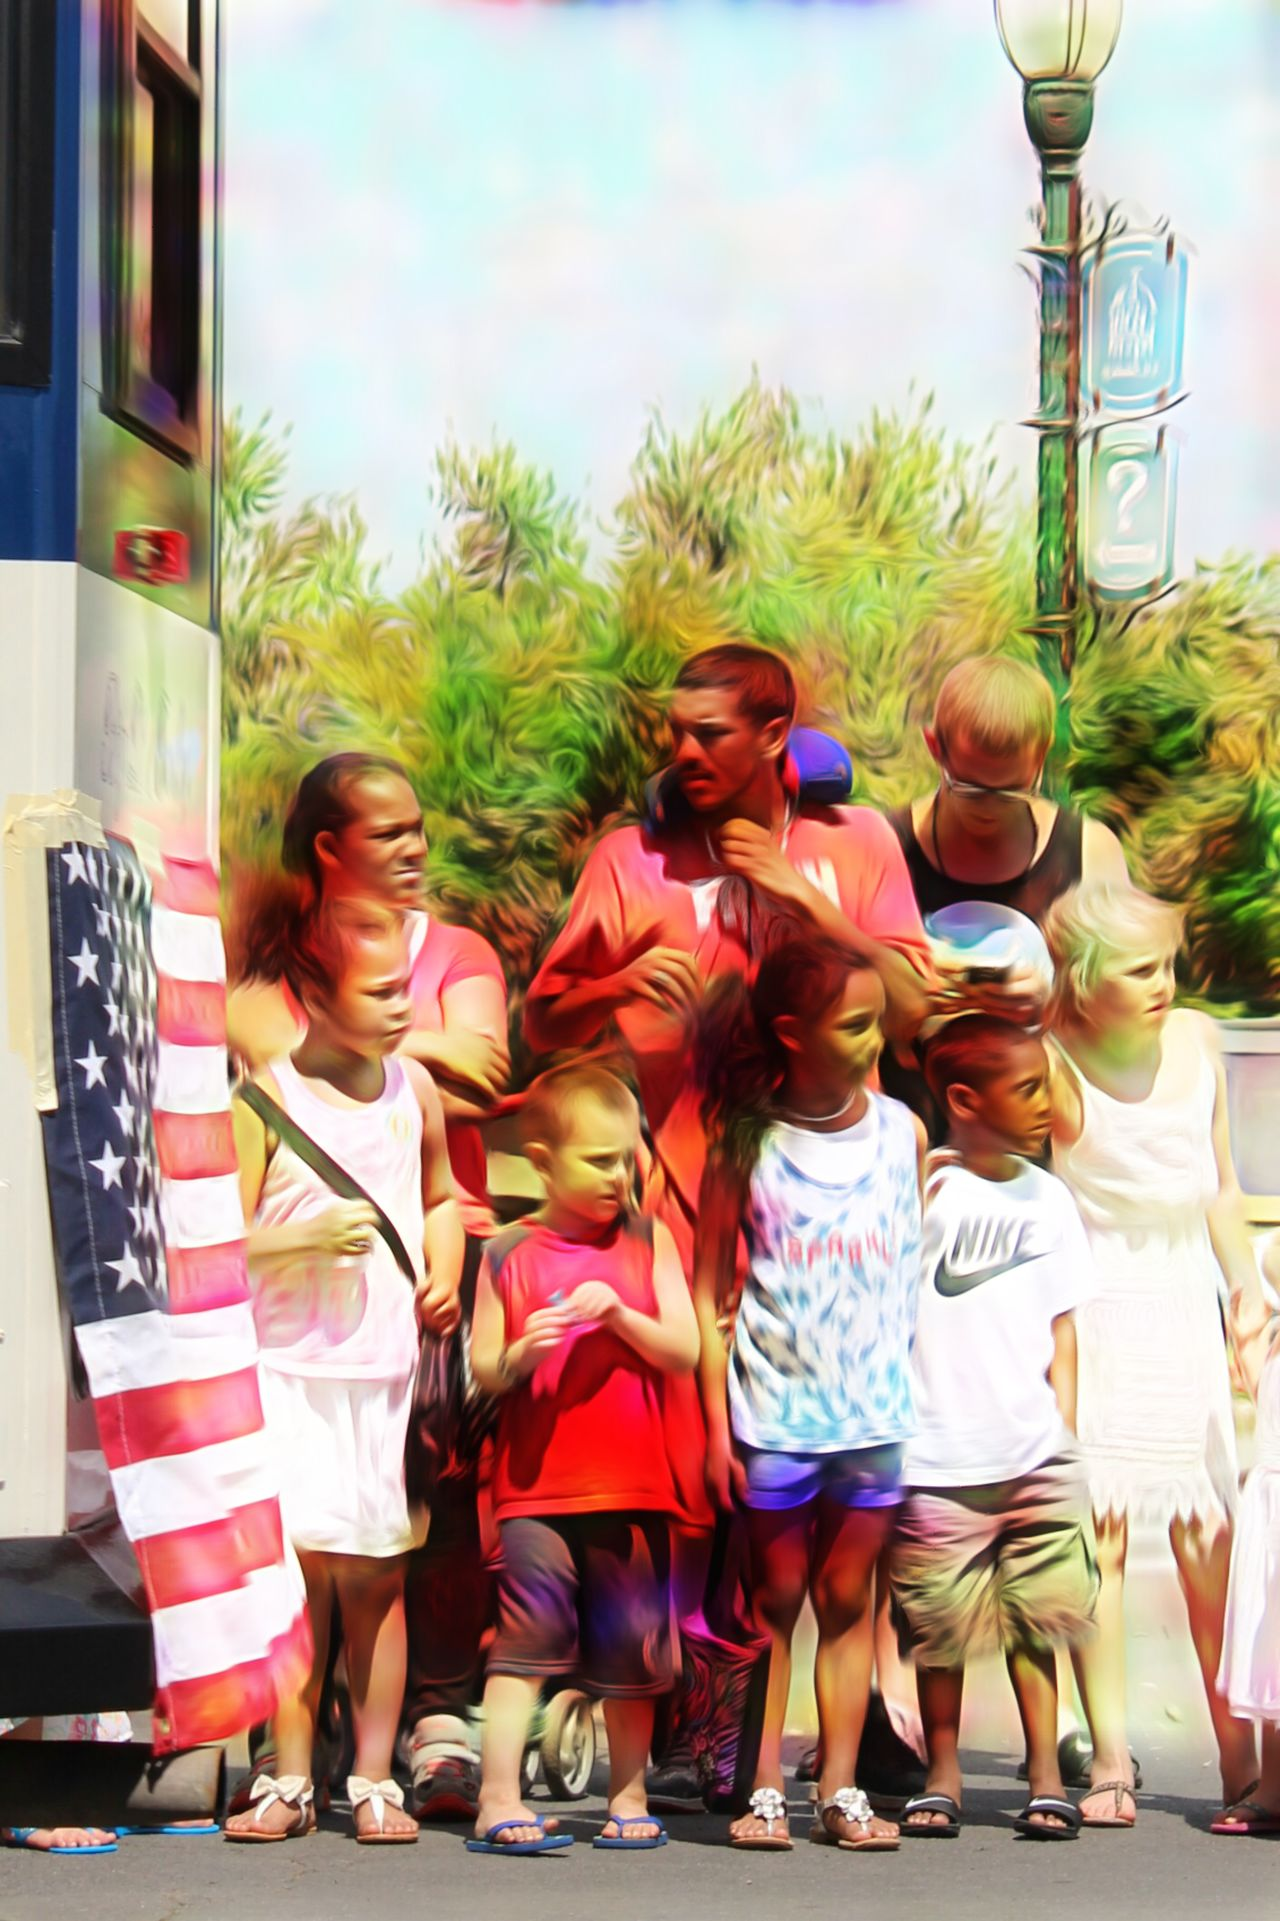 Child Girls Females Person Fun Group Of People Offspring Males  People Outdoors Small Group Of People Vertical Adult Men Cheerful Togetherness Young Adult Day Americans American Flag Parade